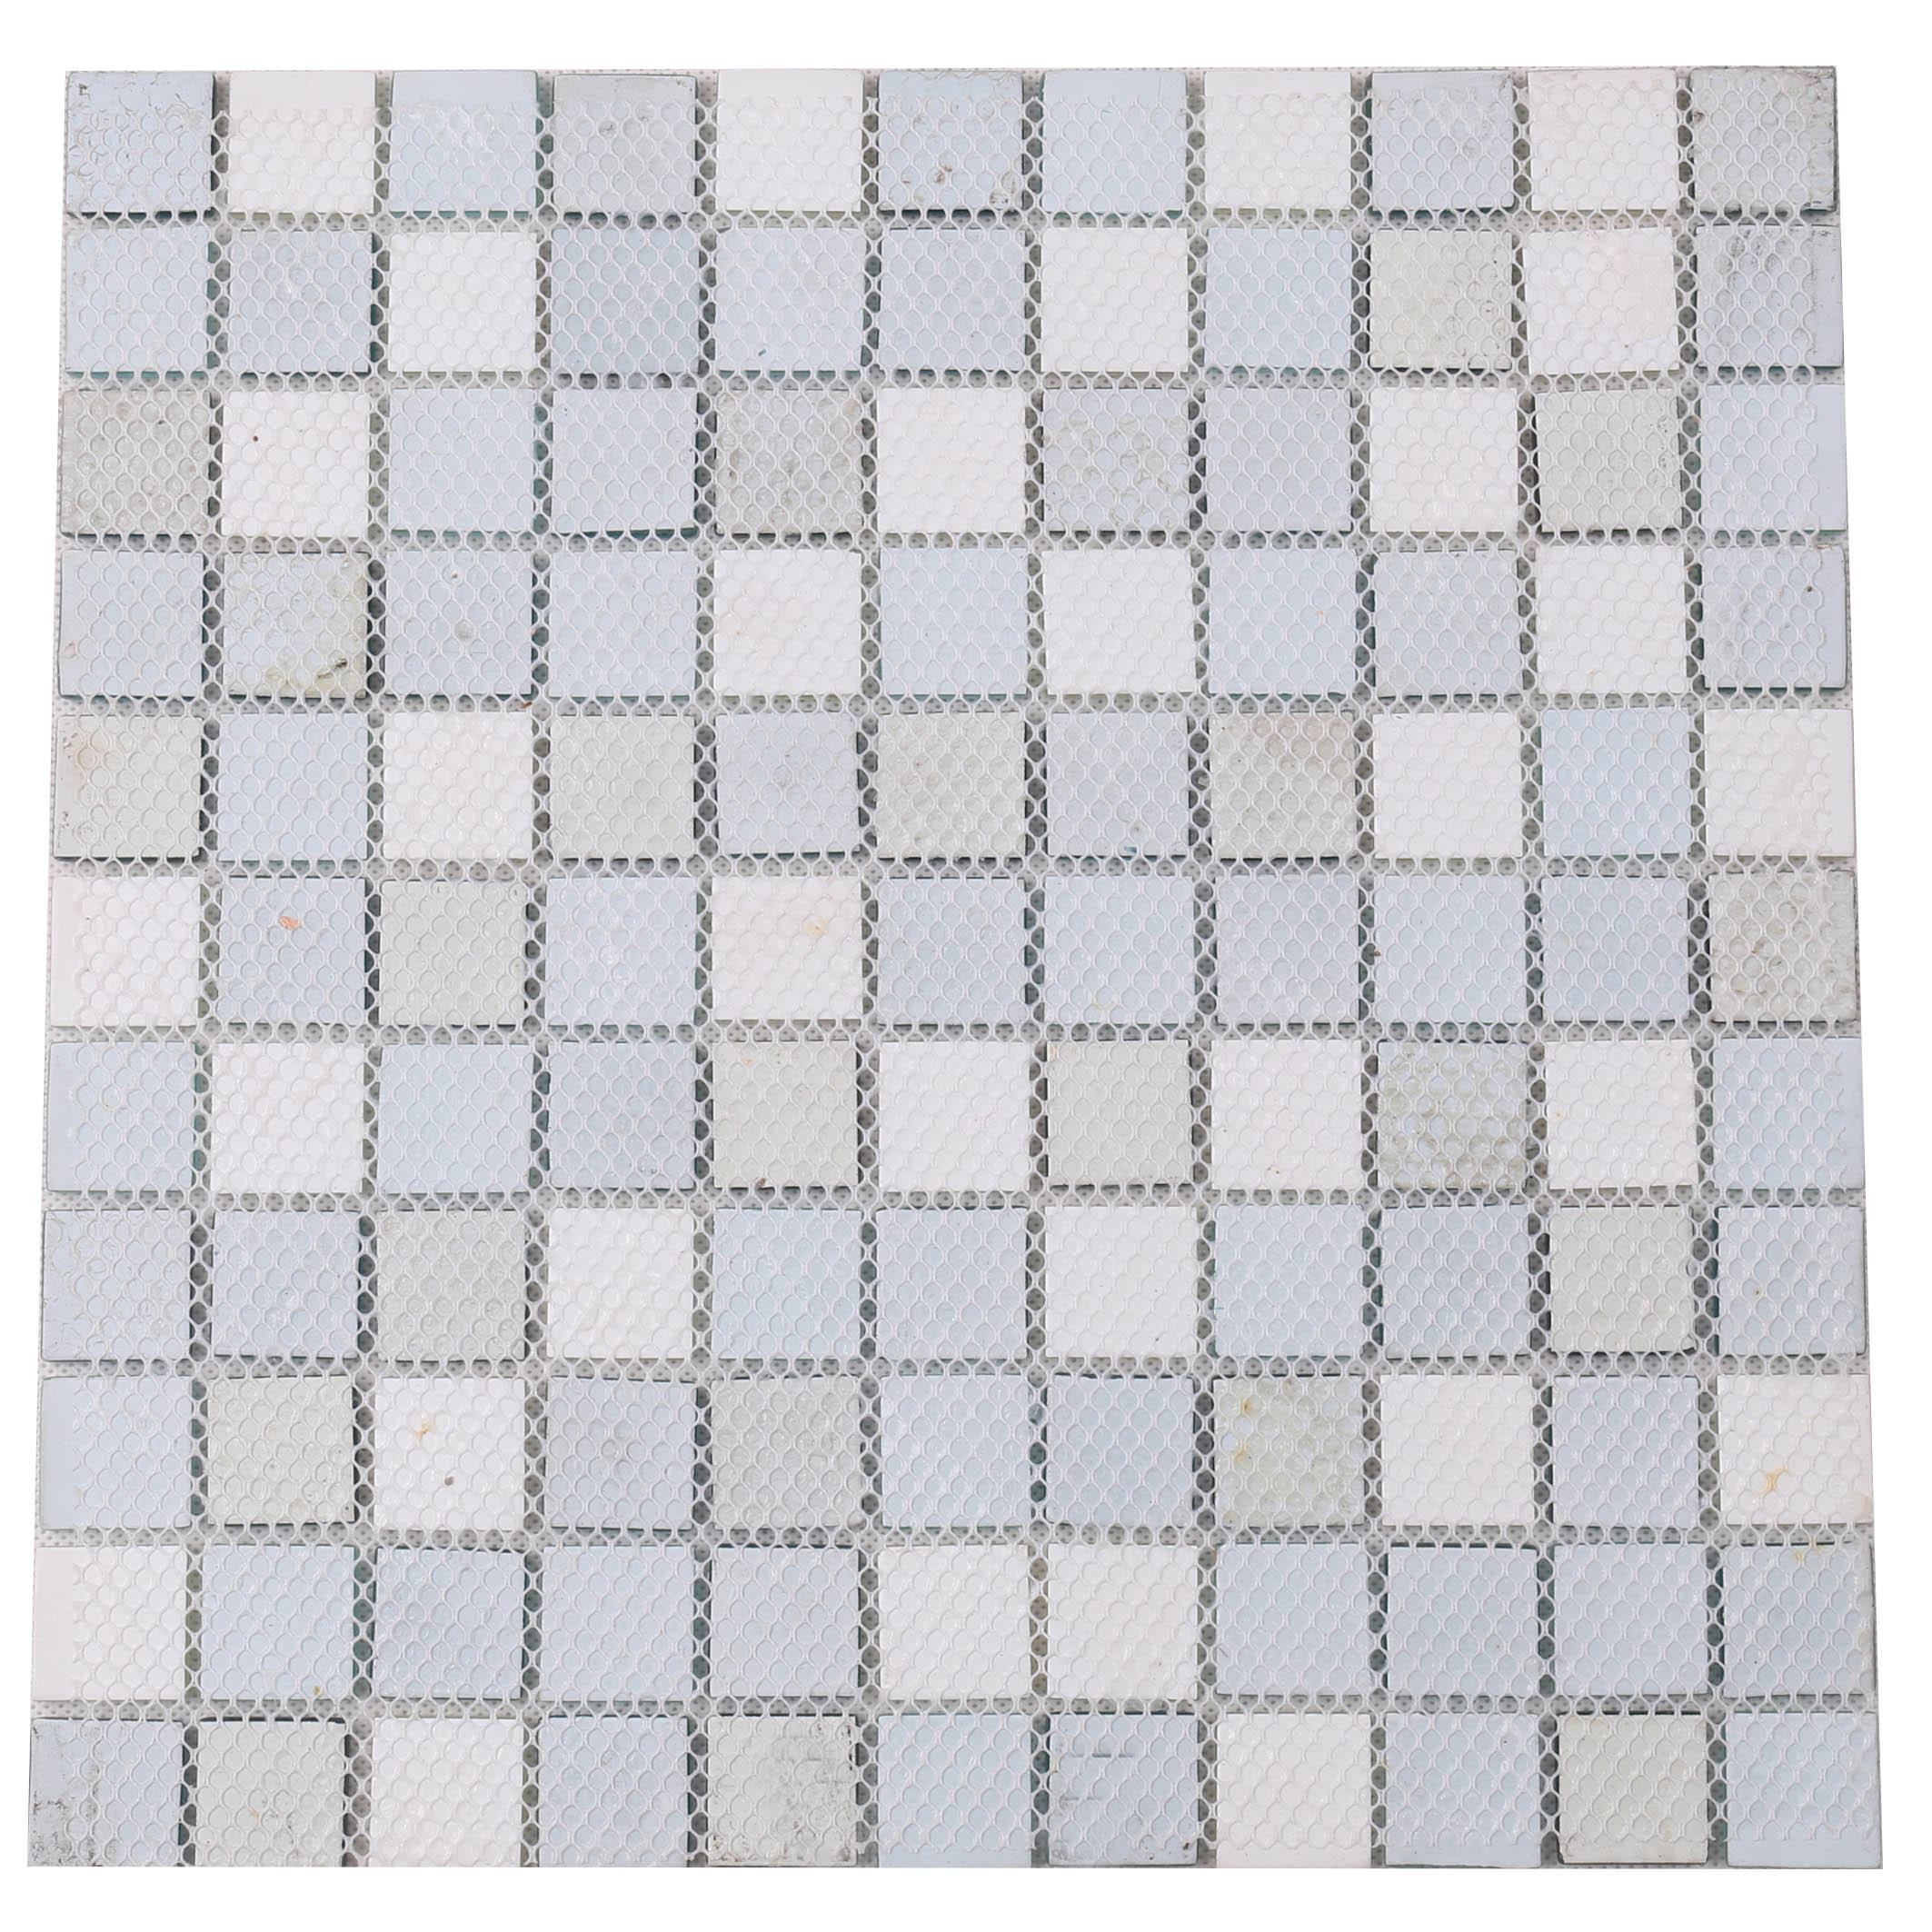 Heng Xing waterline glass pool tile supplier for fountain-5